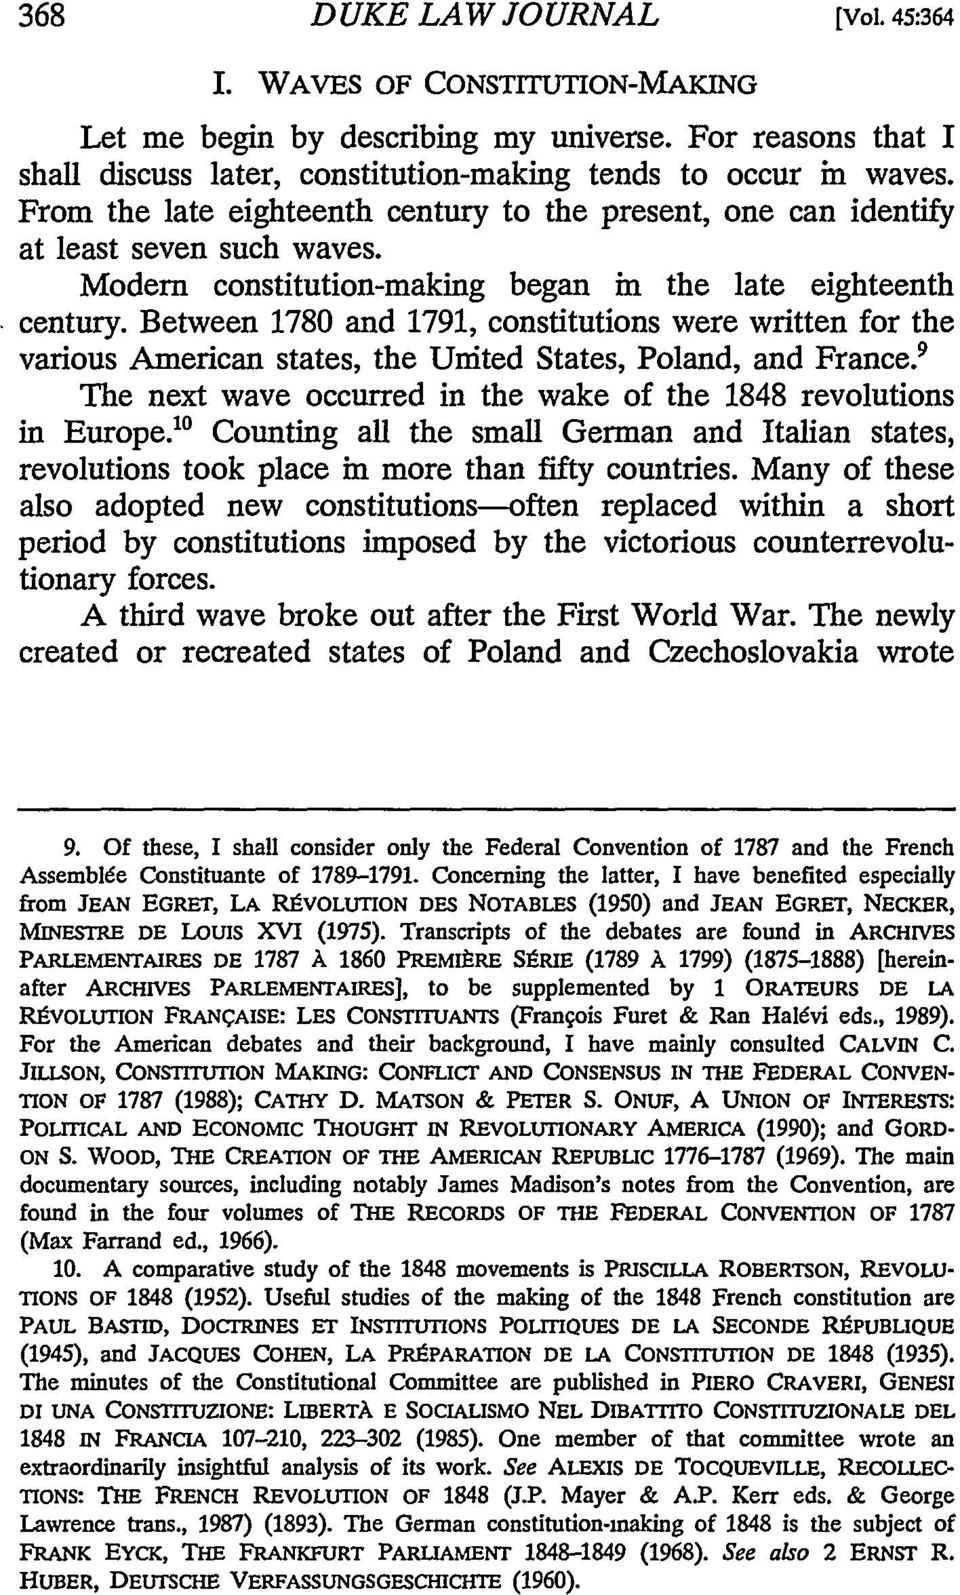 Between 1780 and 1791, constitutions were written for the various American states, the United States, Poland, and France. 9 The next wave occurred in the wake of the 1848 revolutions in Europe.